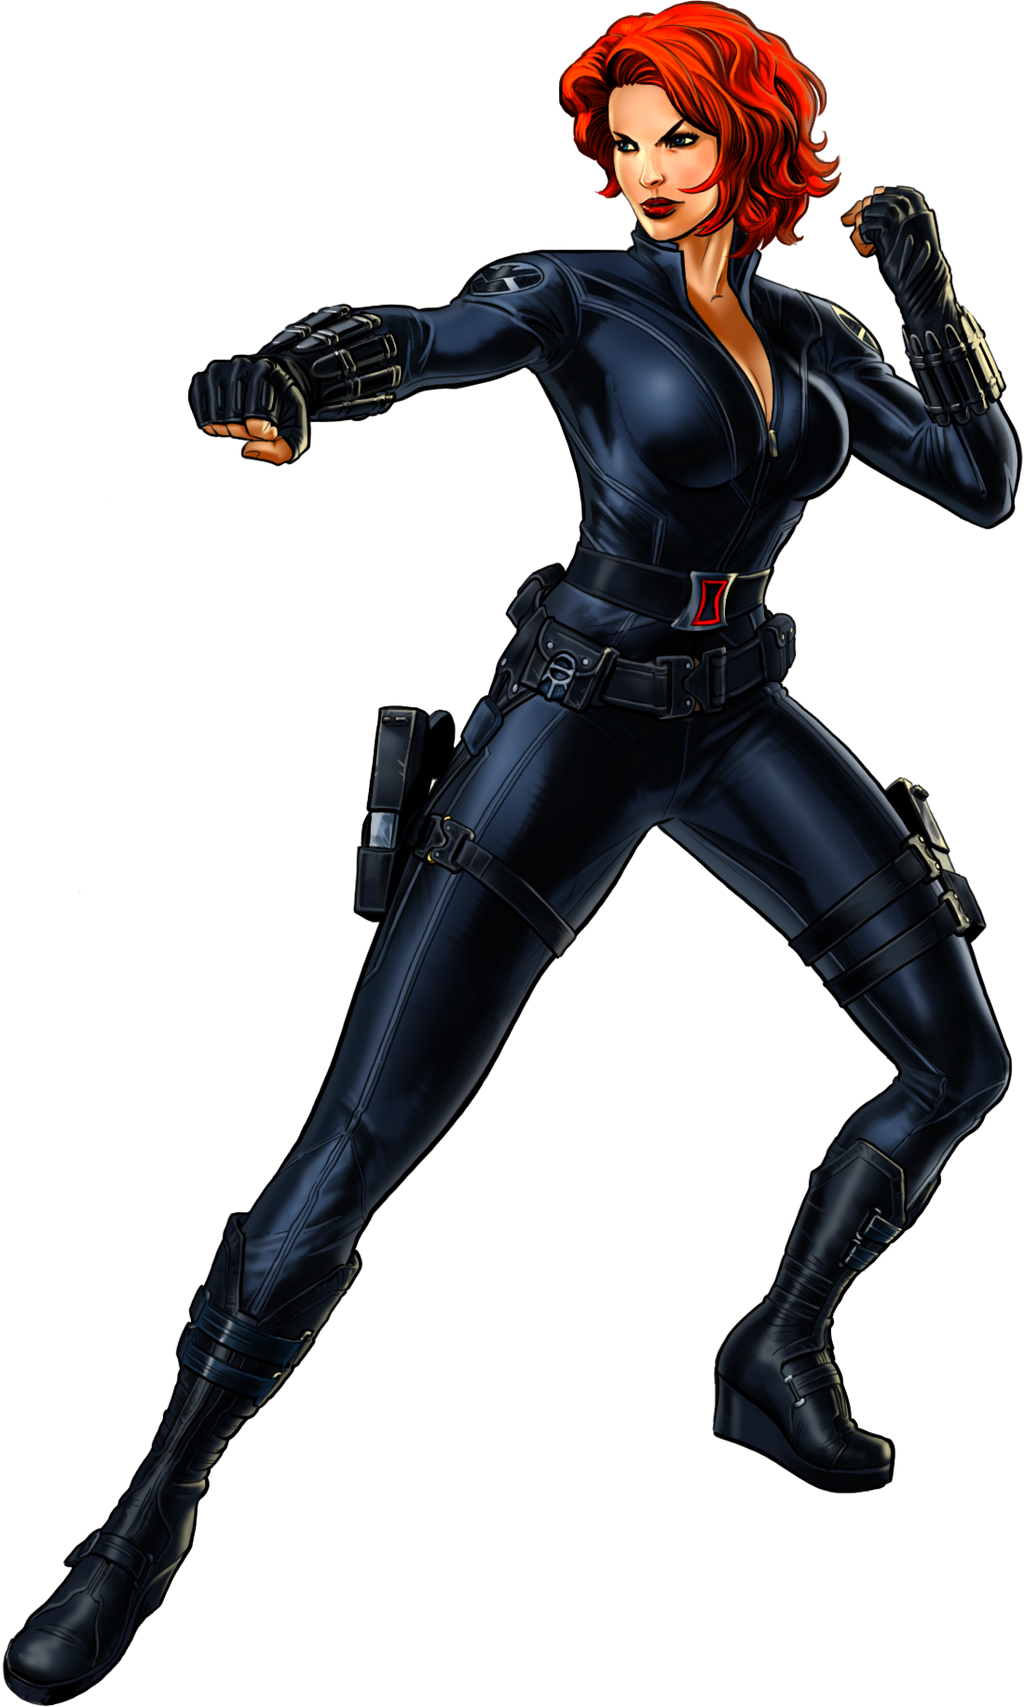 Where to locate a black widow of the avengers costume? black_widow_avengers_by_alexiscabo1-da6kmnq